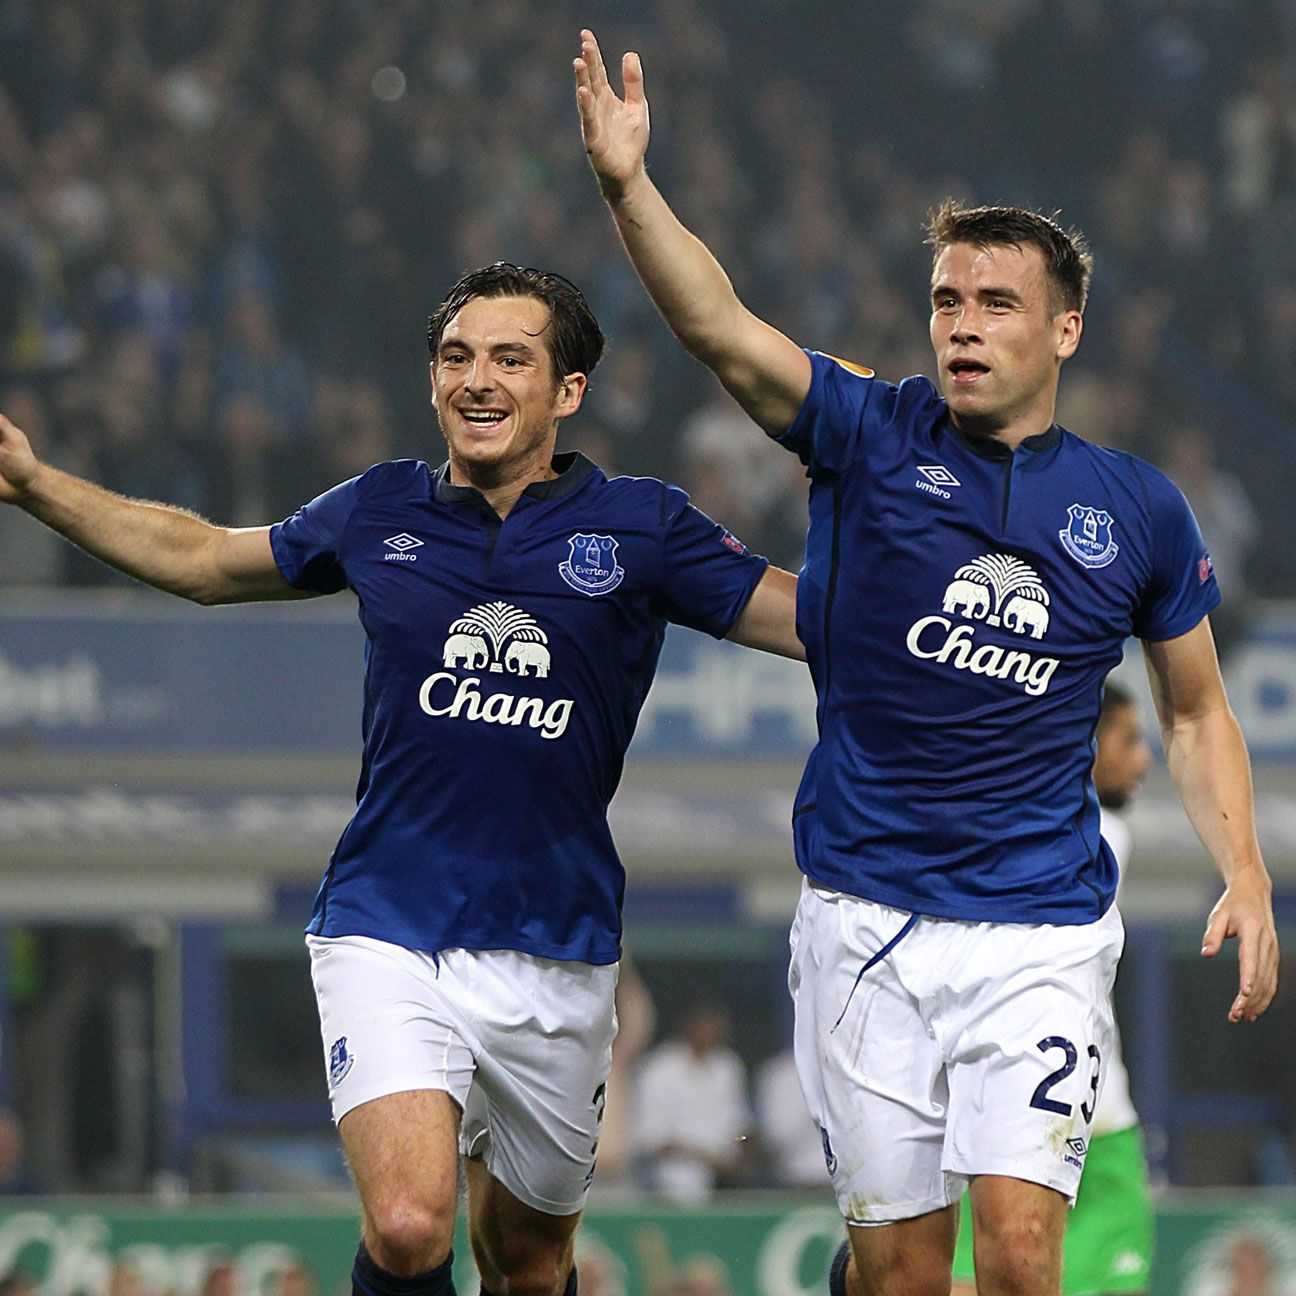 Fullbacks Leighton Baines and Seamus Coleman led the charge in Everton's Europa League triumph.